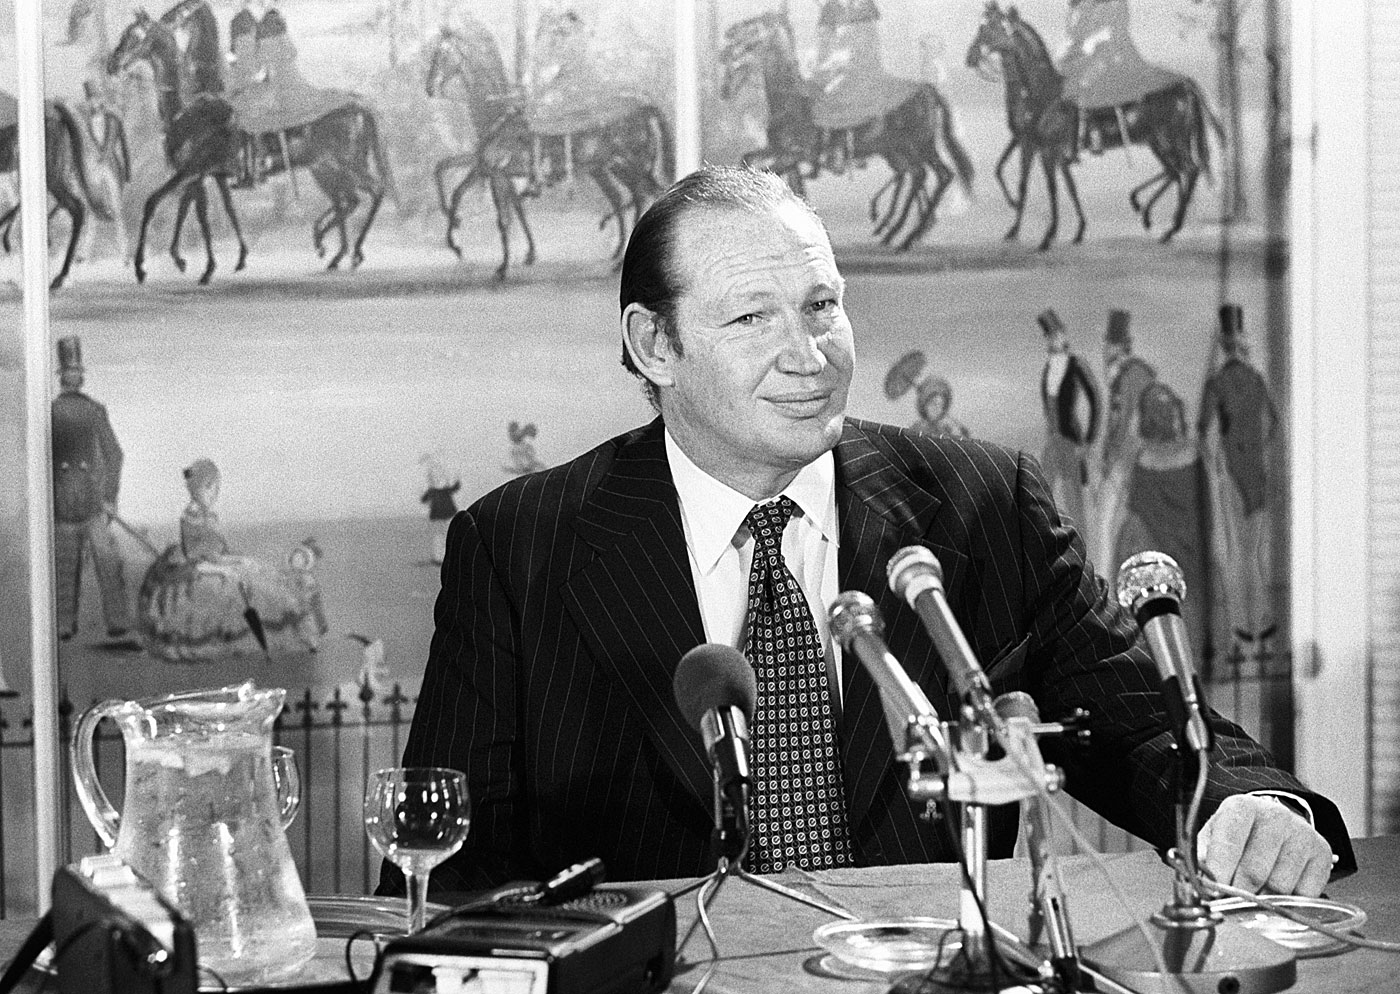 Kerry Packer at a press conference